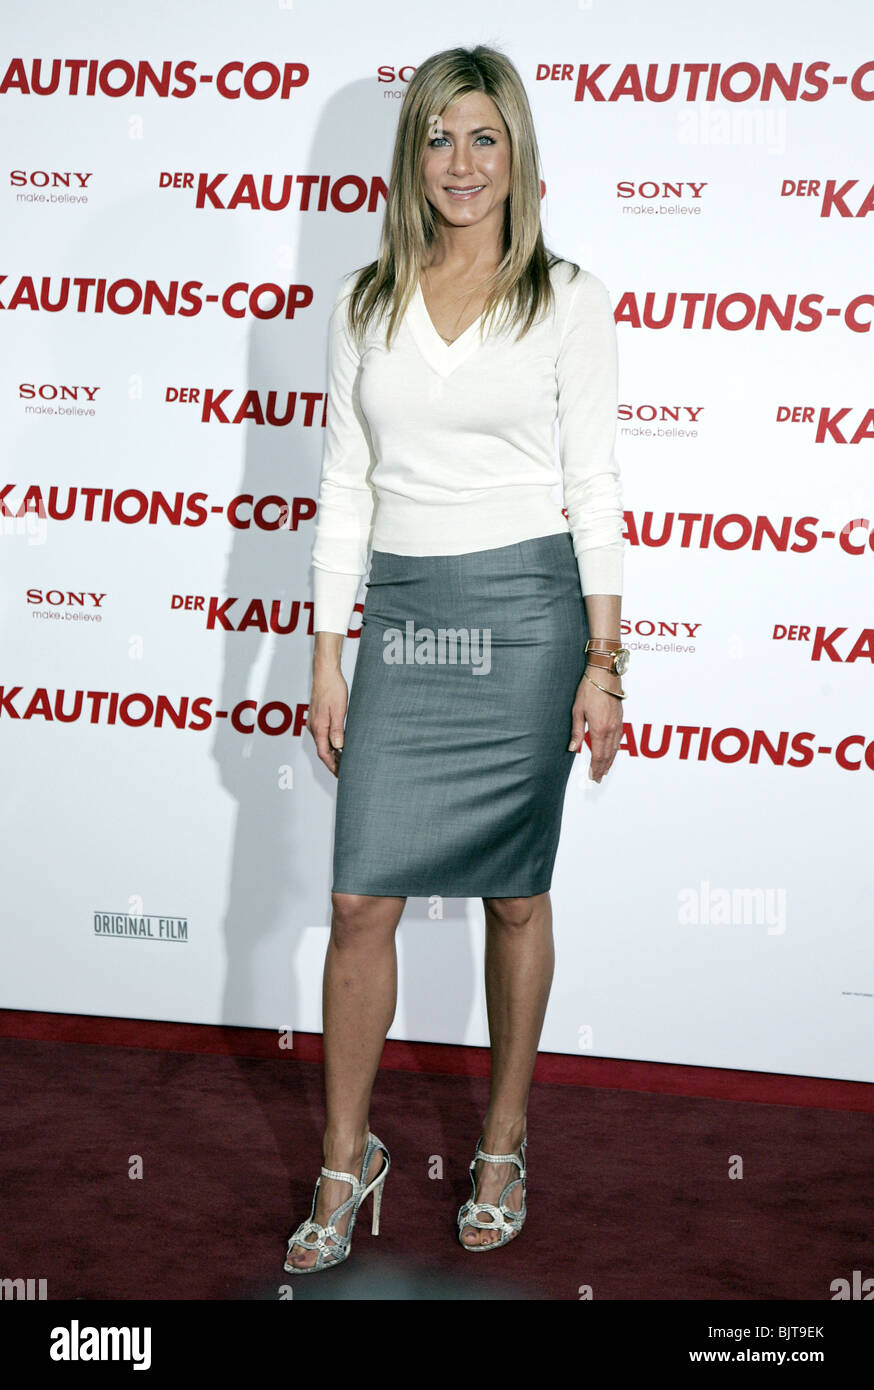 a910afc61a JENNIFER ANISTON THE BOUNTY HUNTER PHOTOCALL HOTEL DE ROME BERLIN GERMANY  29 March 2010 - Stock